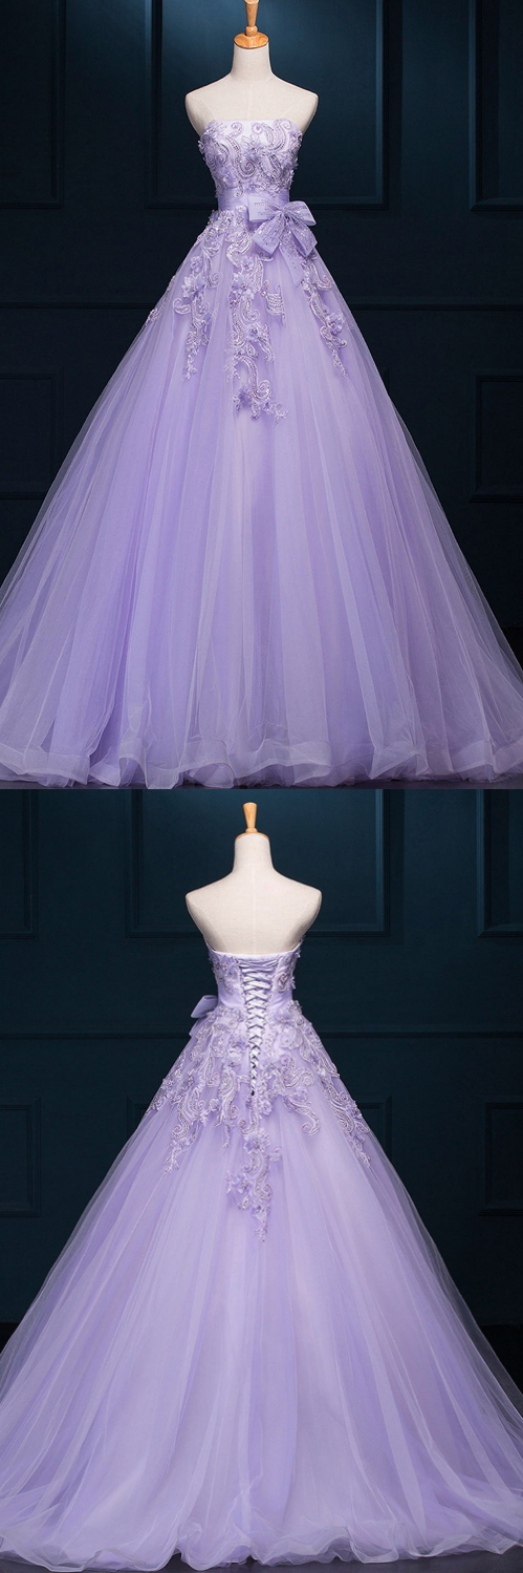 Lovely Lavender Gown